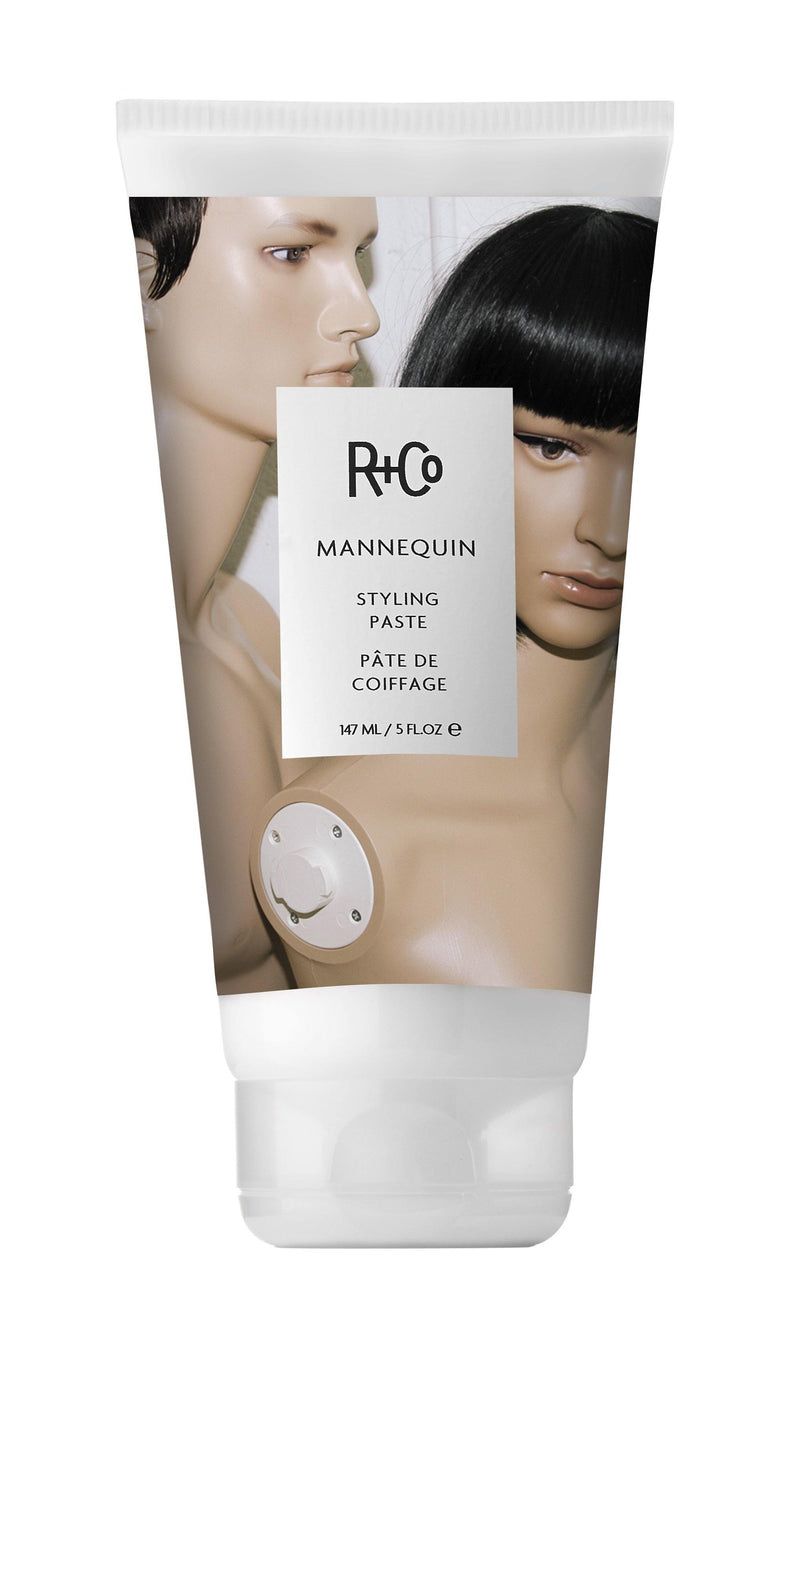 Mannequin - Styling Paste - Bristol Hairdressing